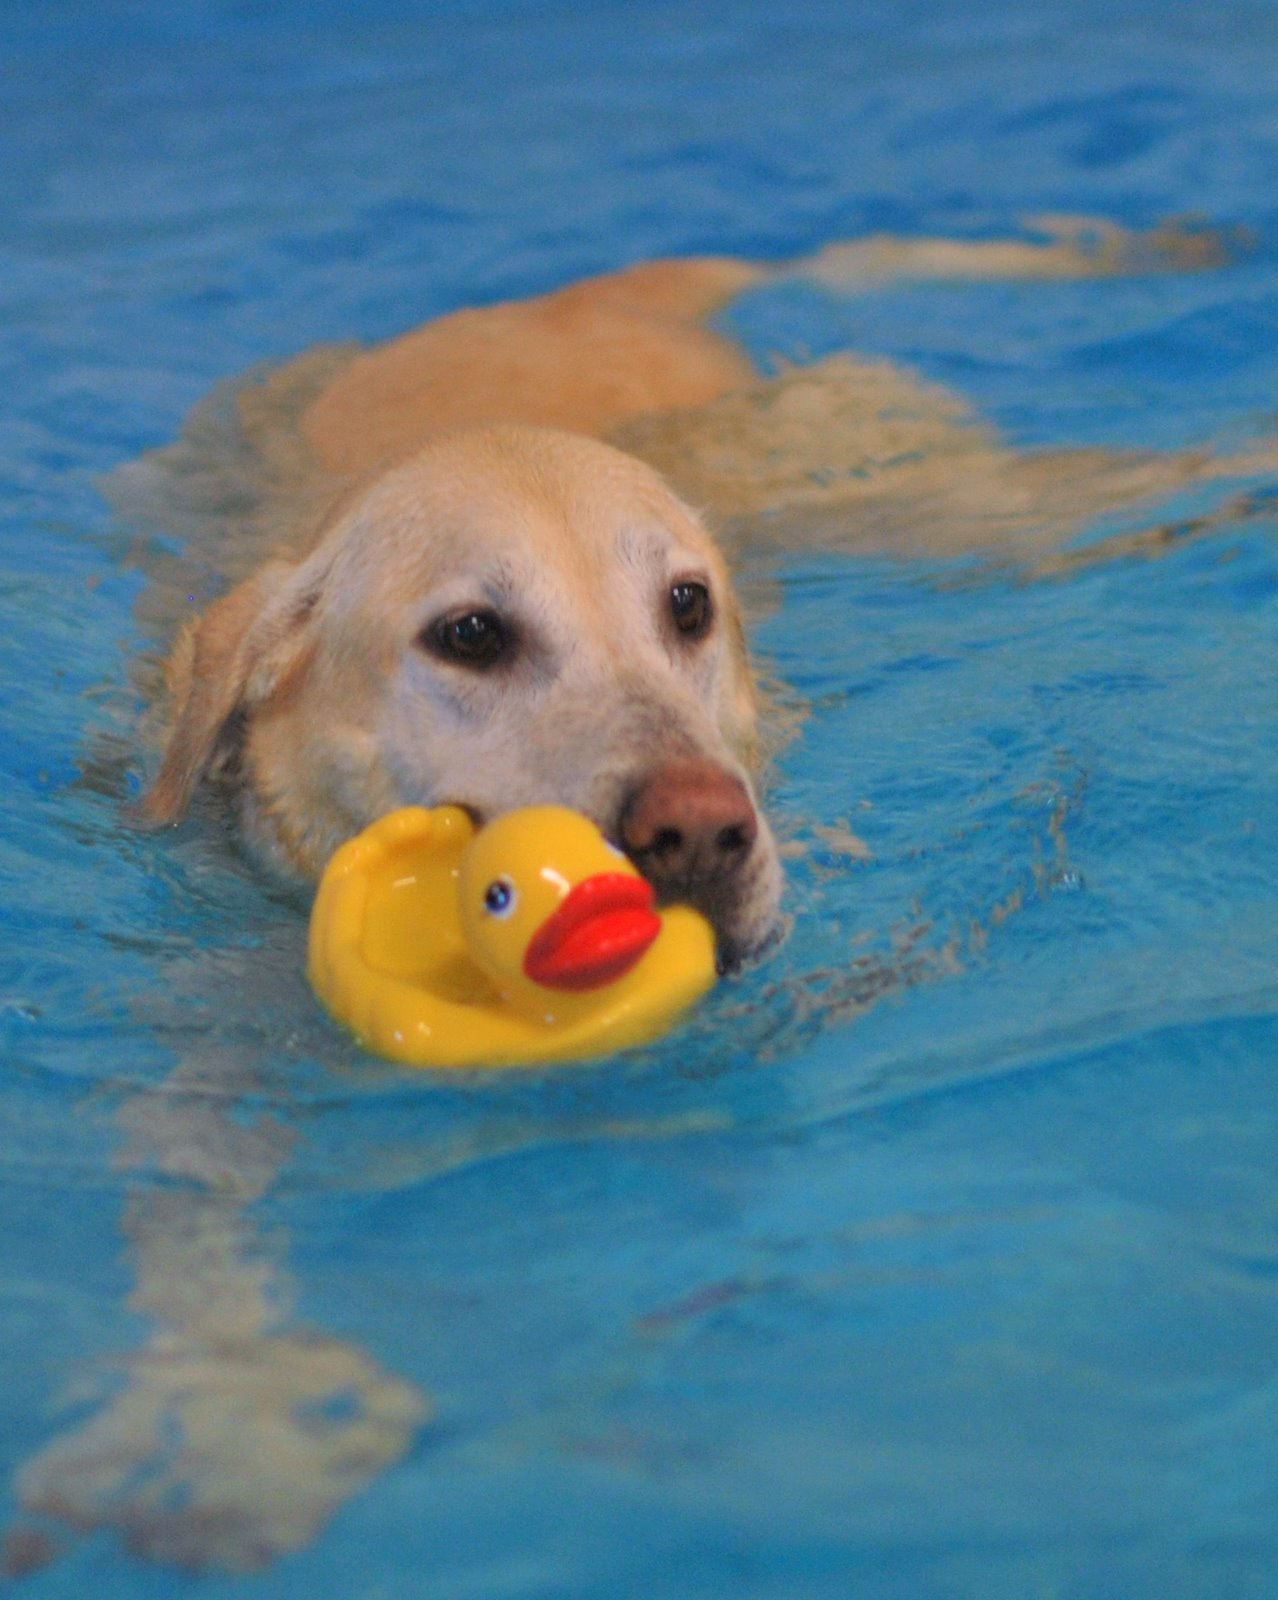 Swimming Paws with Rubber Ducky